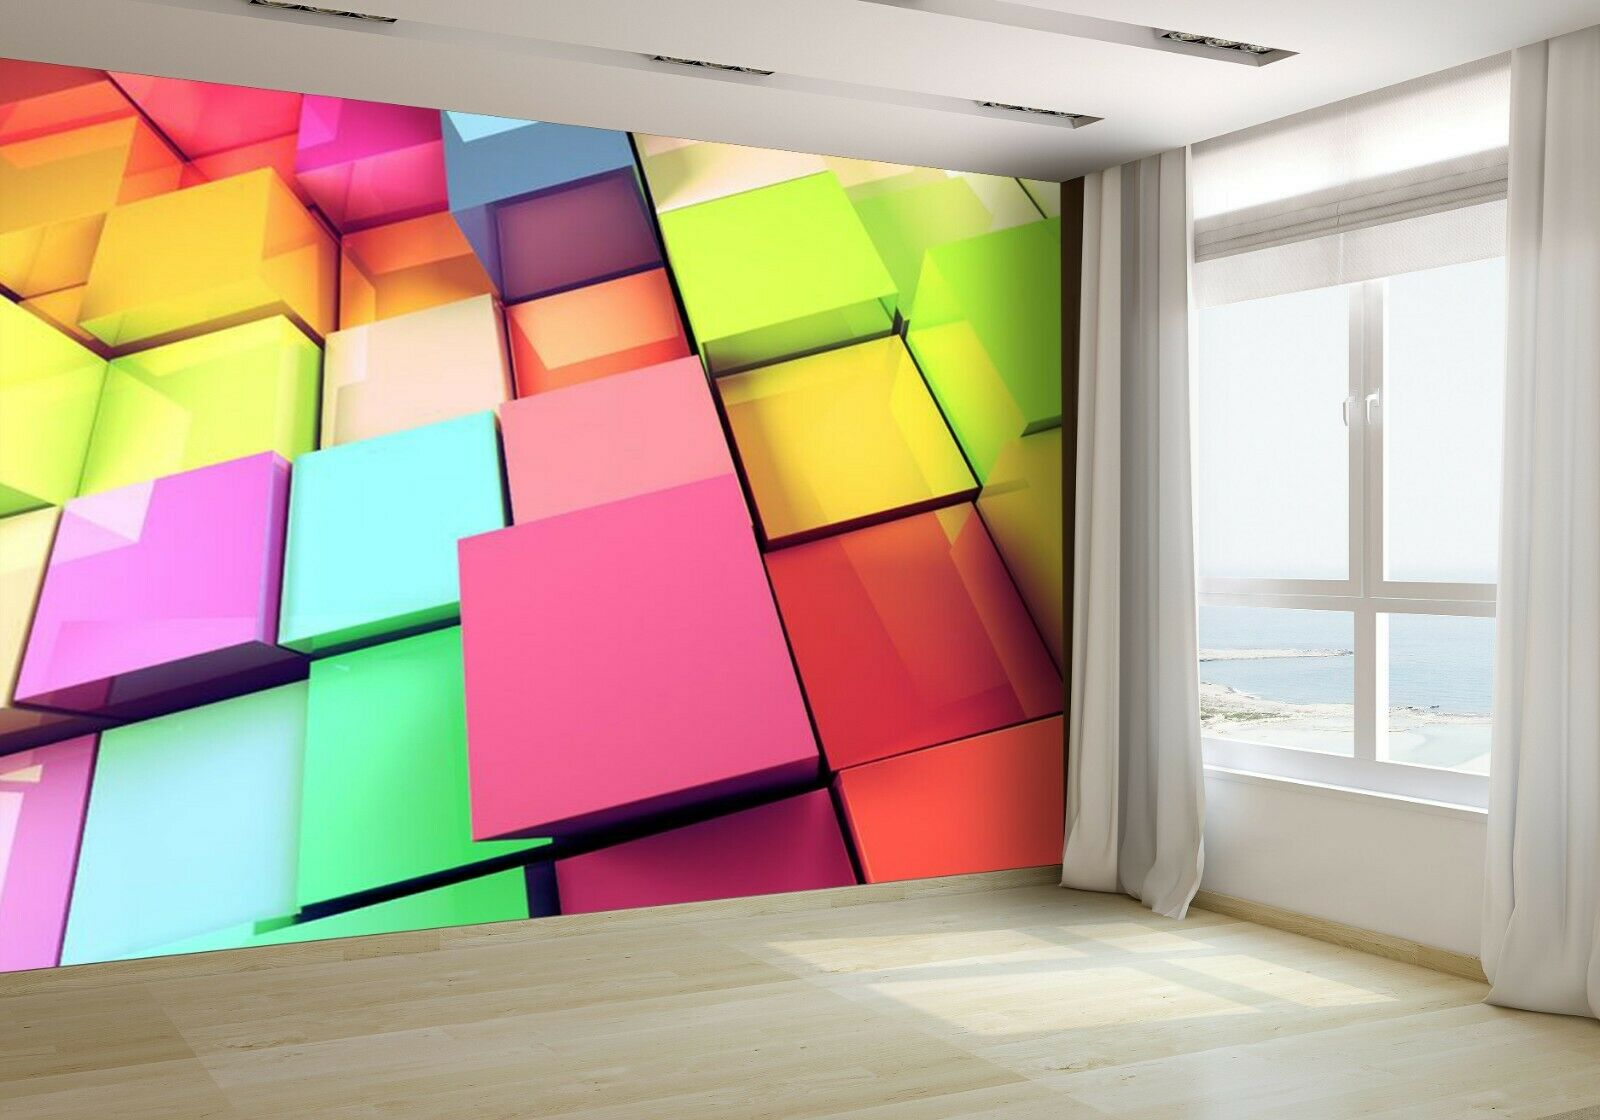 Abstract 3d ColGoldt Cubes Wallpaper Mural Photo 18586163 budget paper